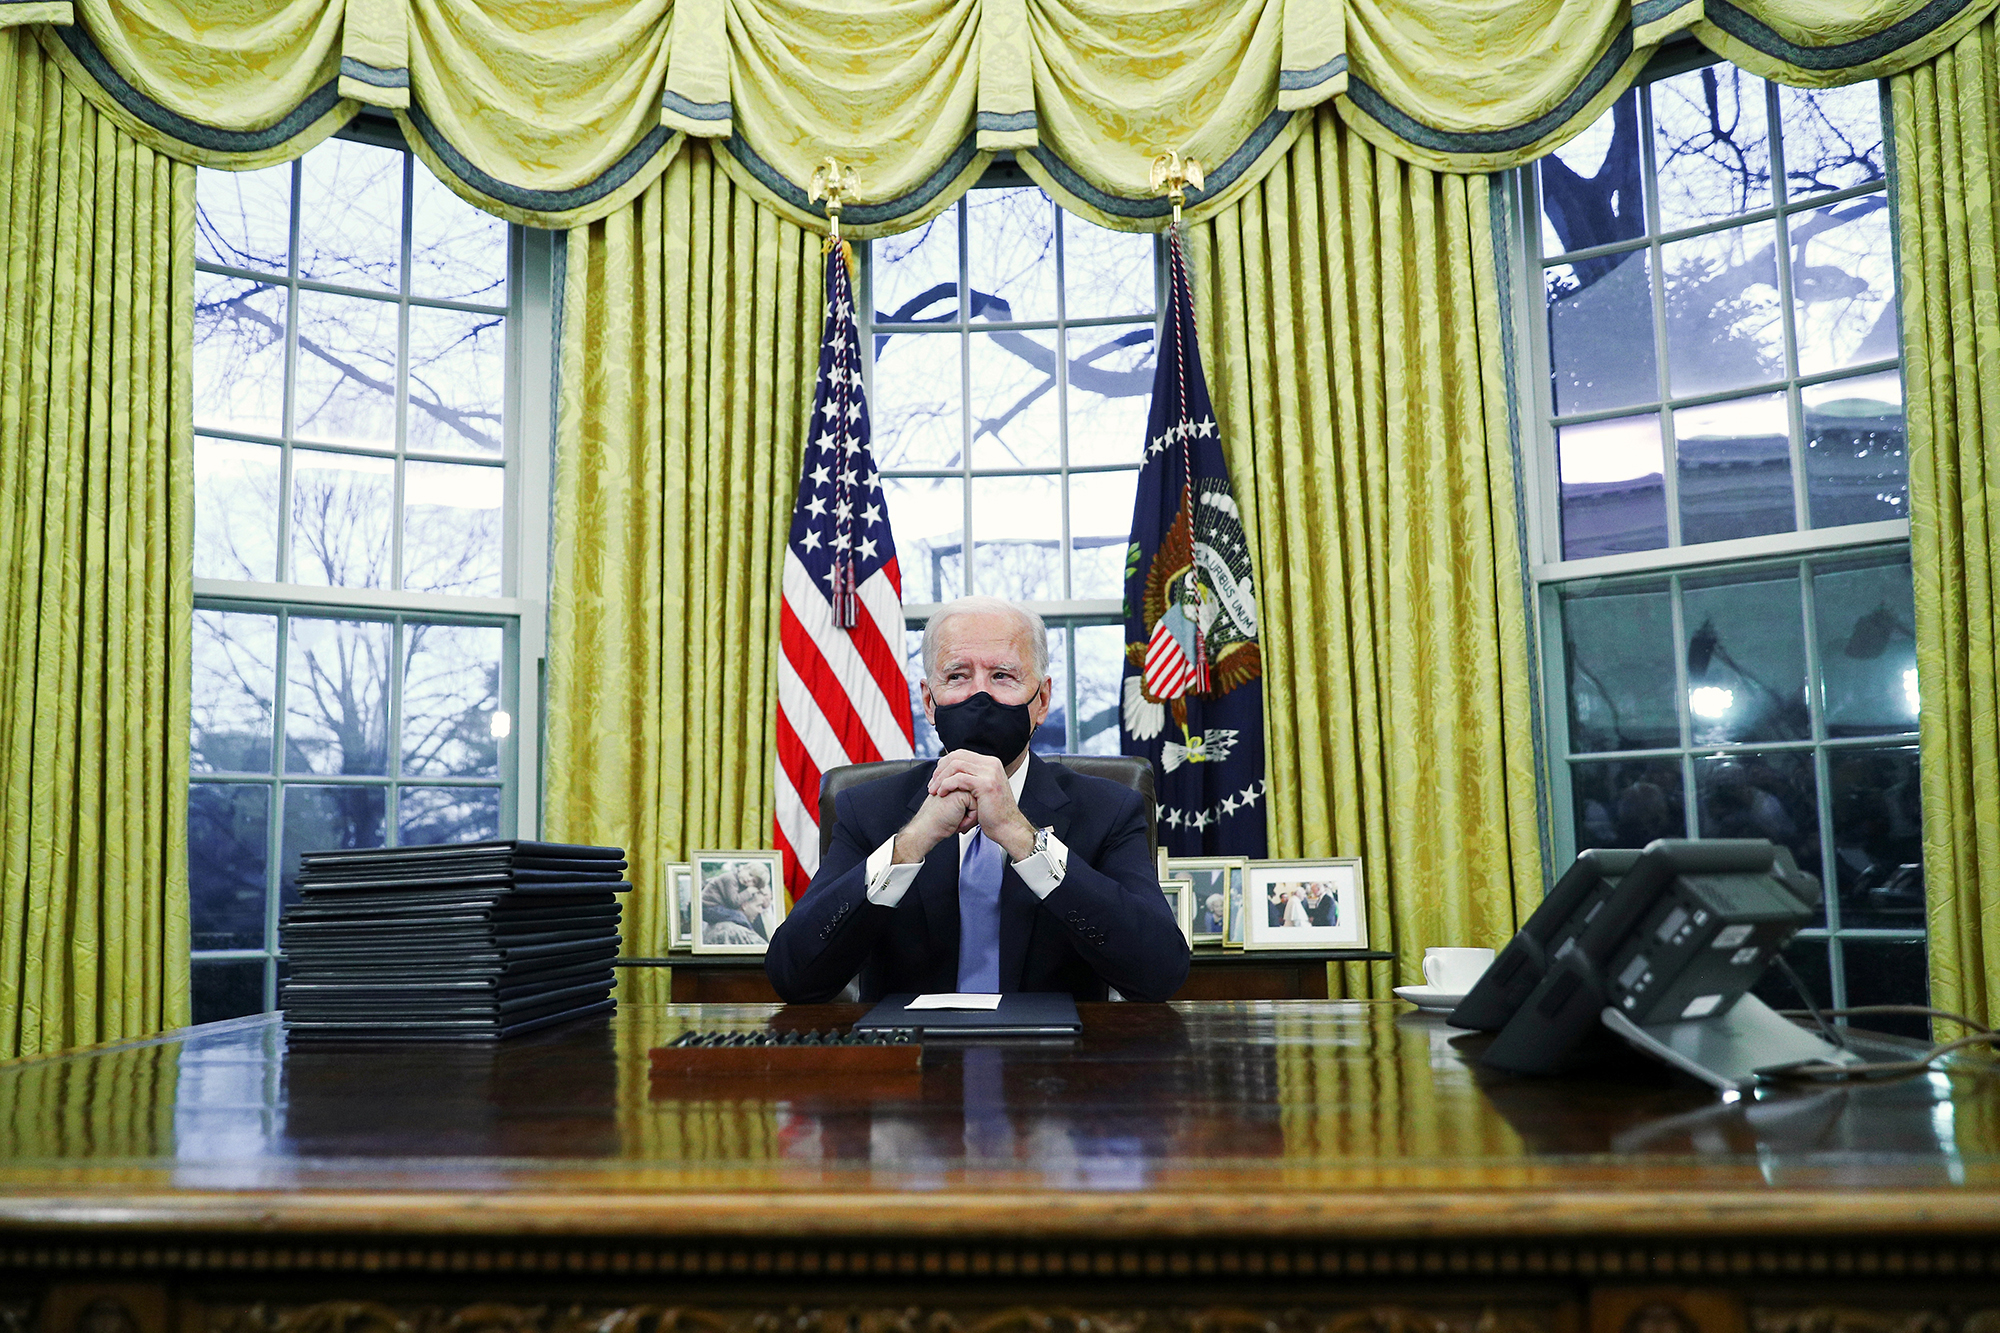 President Joe Bidensigns executive ordersin the Oval Office after his inauguration on January 20.